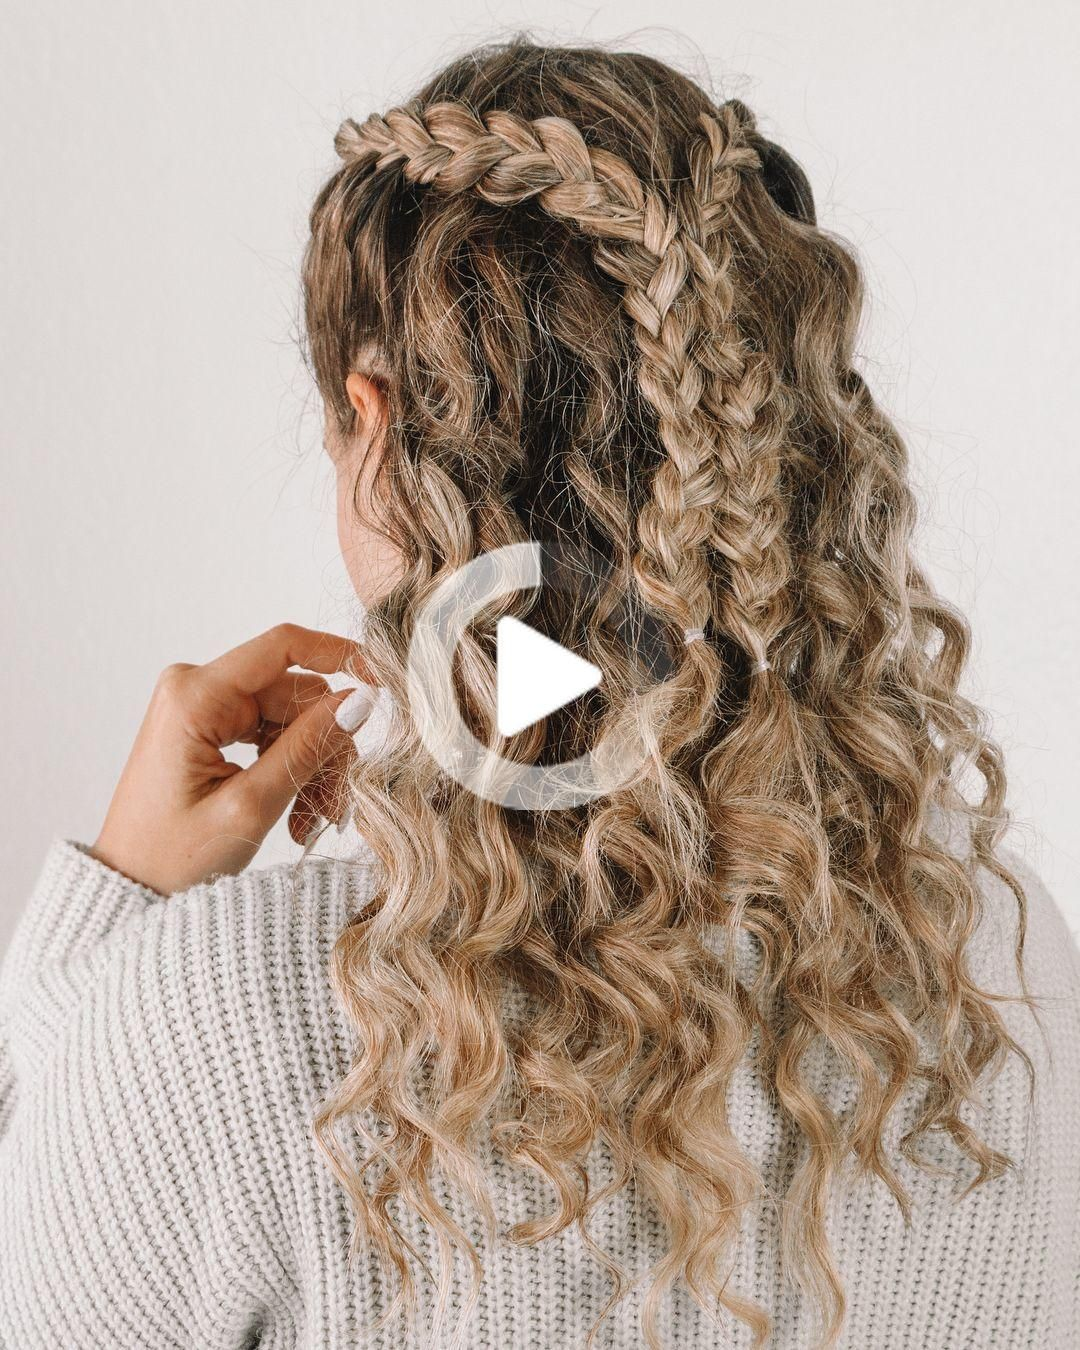 Pin On Easy Hairstyles For Curly Hair